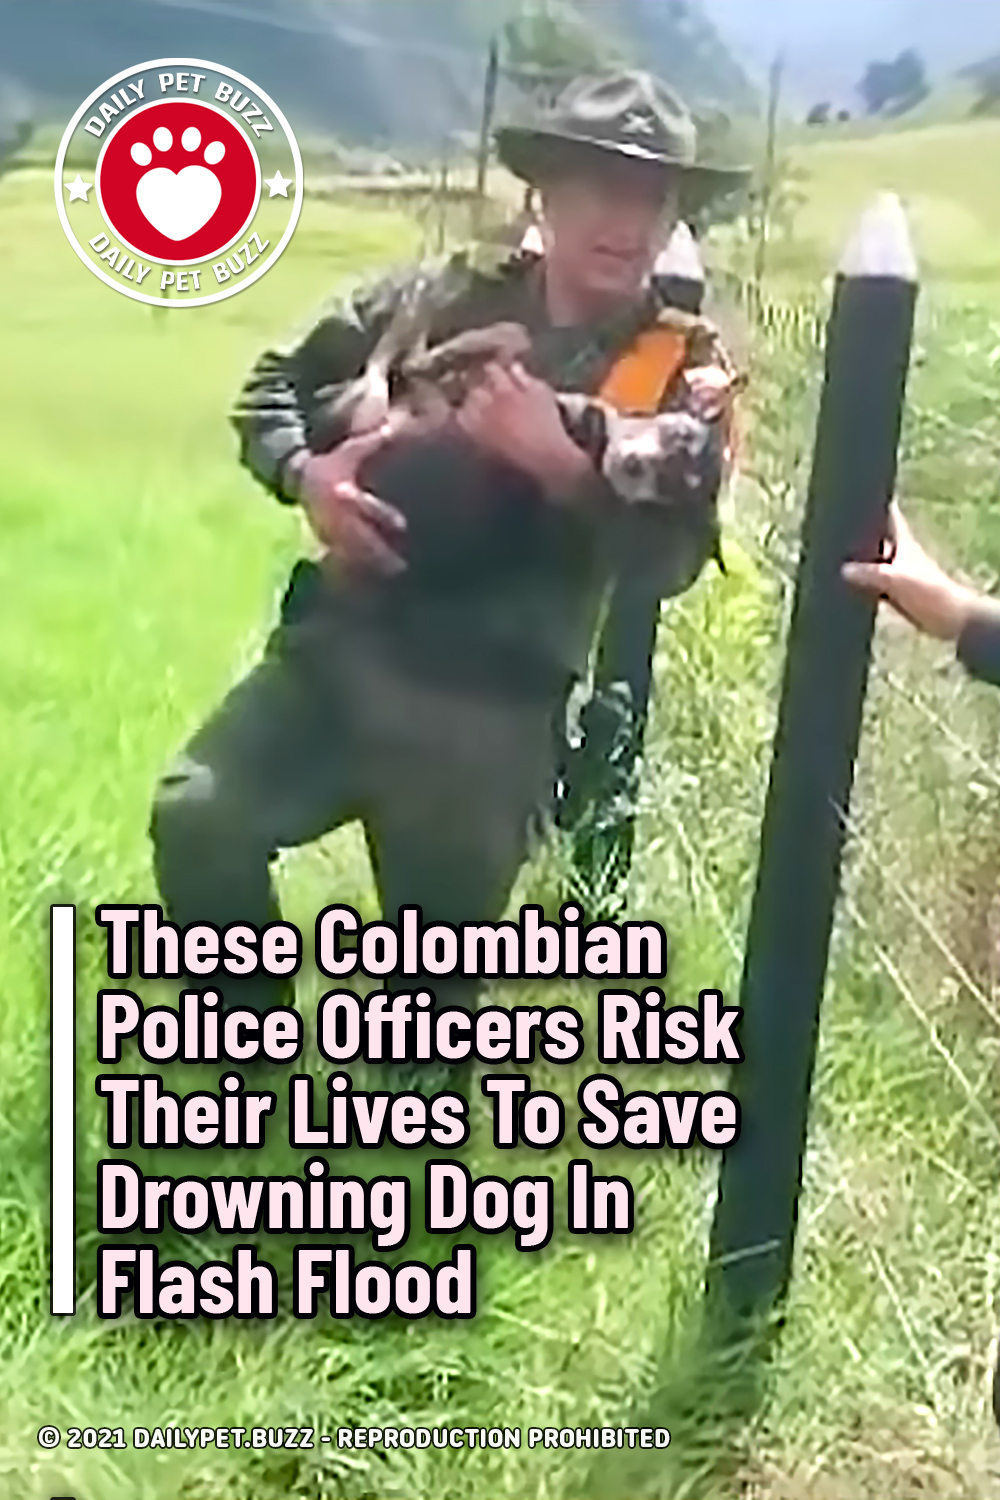 These Colombian Police Officers Risk Their Lives To Save Drowning Dog In Flash Flood